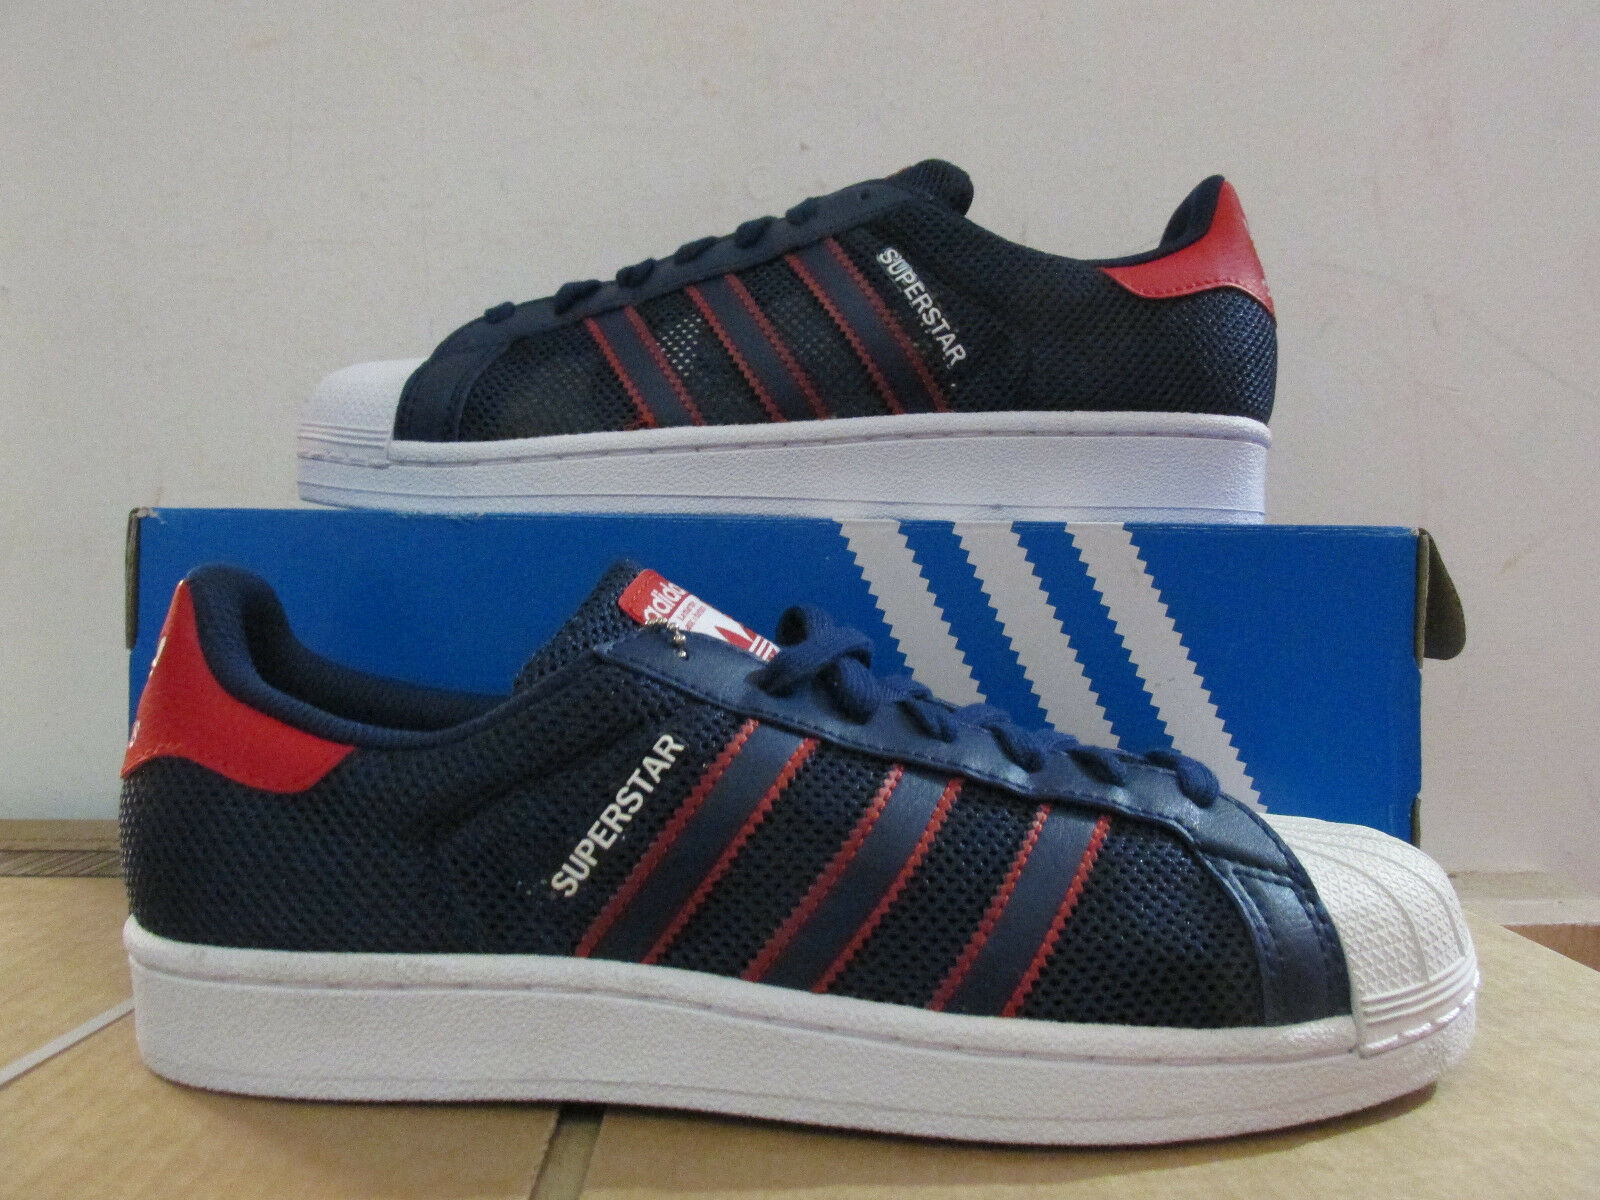 adidas originals superstar mens trainers BB5395 sneakers shoes CLEARANCE Cheap and beautiful fashion